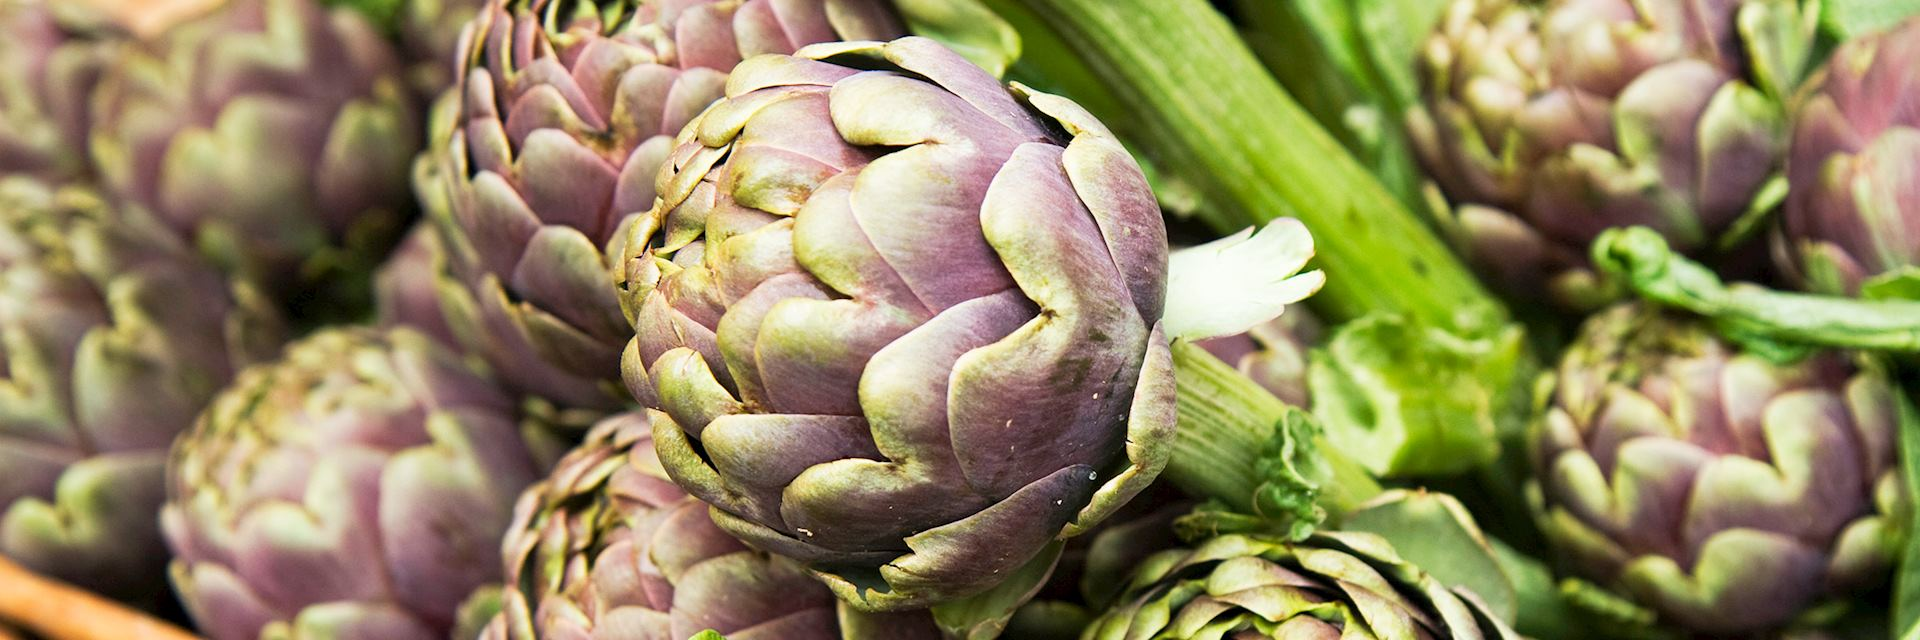 Artichokes at a market stall in Rome